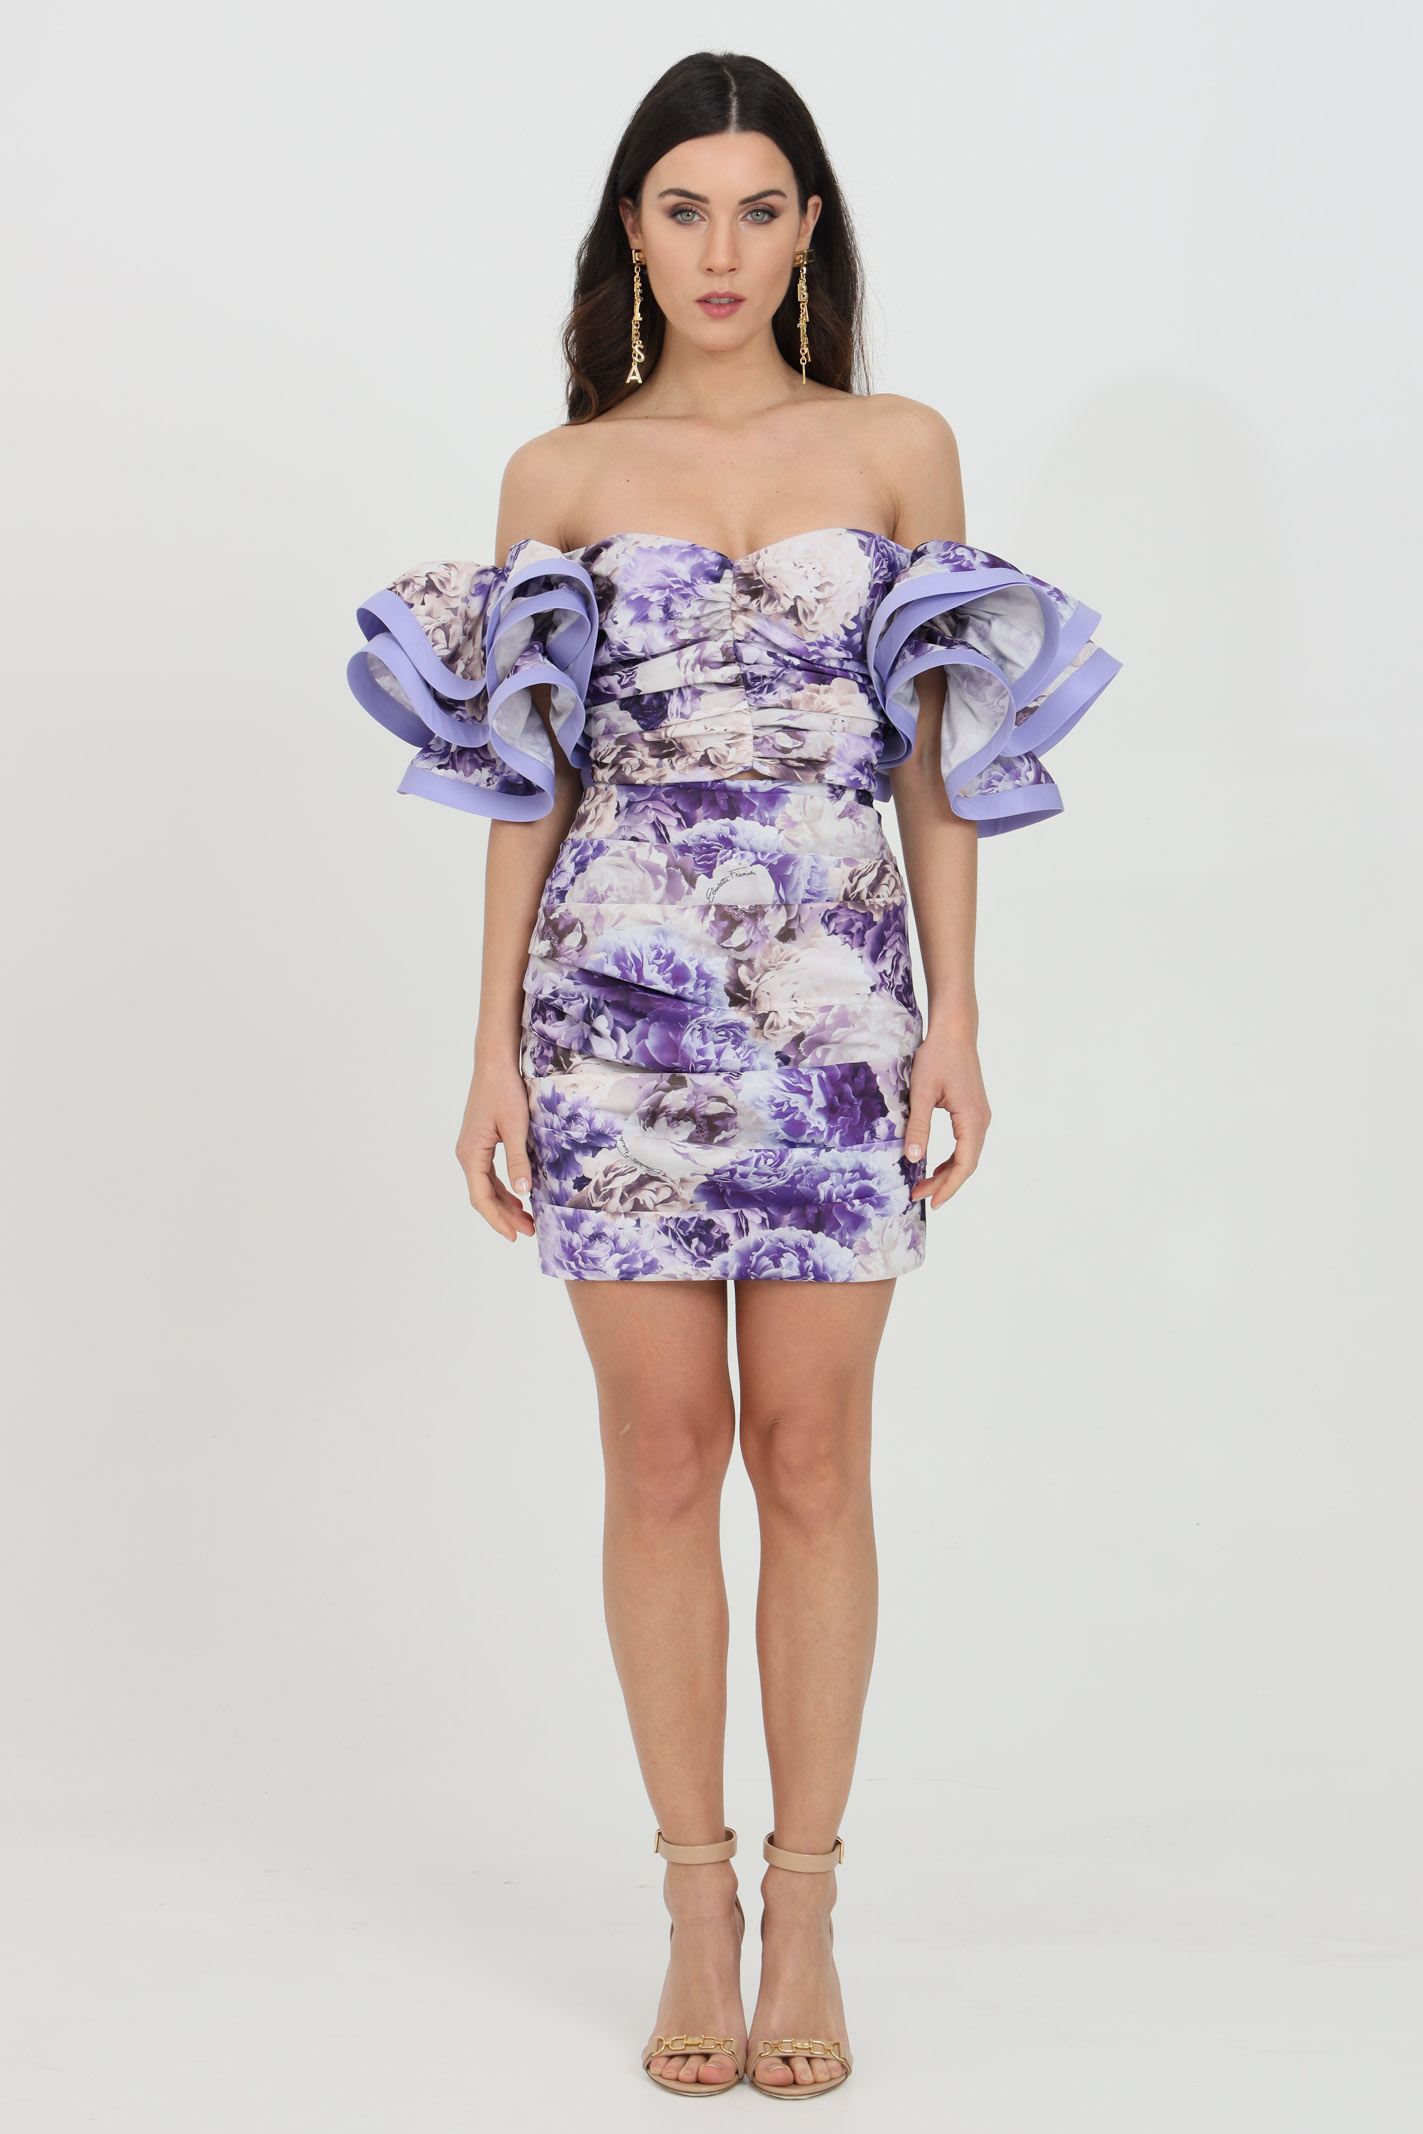 Top and skirt with floral pattern ELISABETTA FRANCHI | Dress | TG00211E2Q38